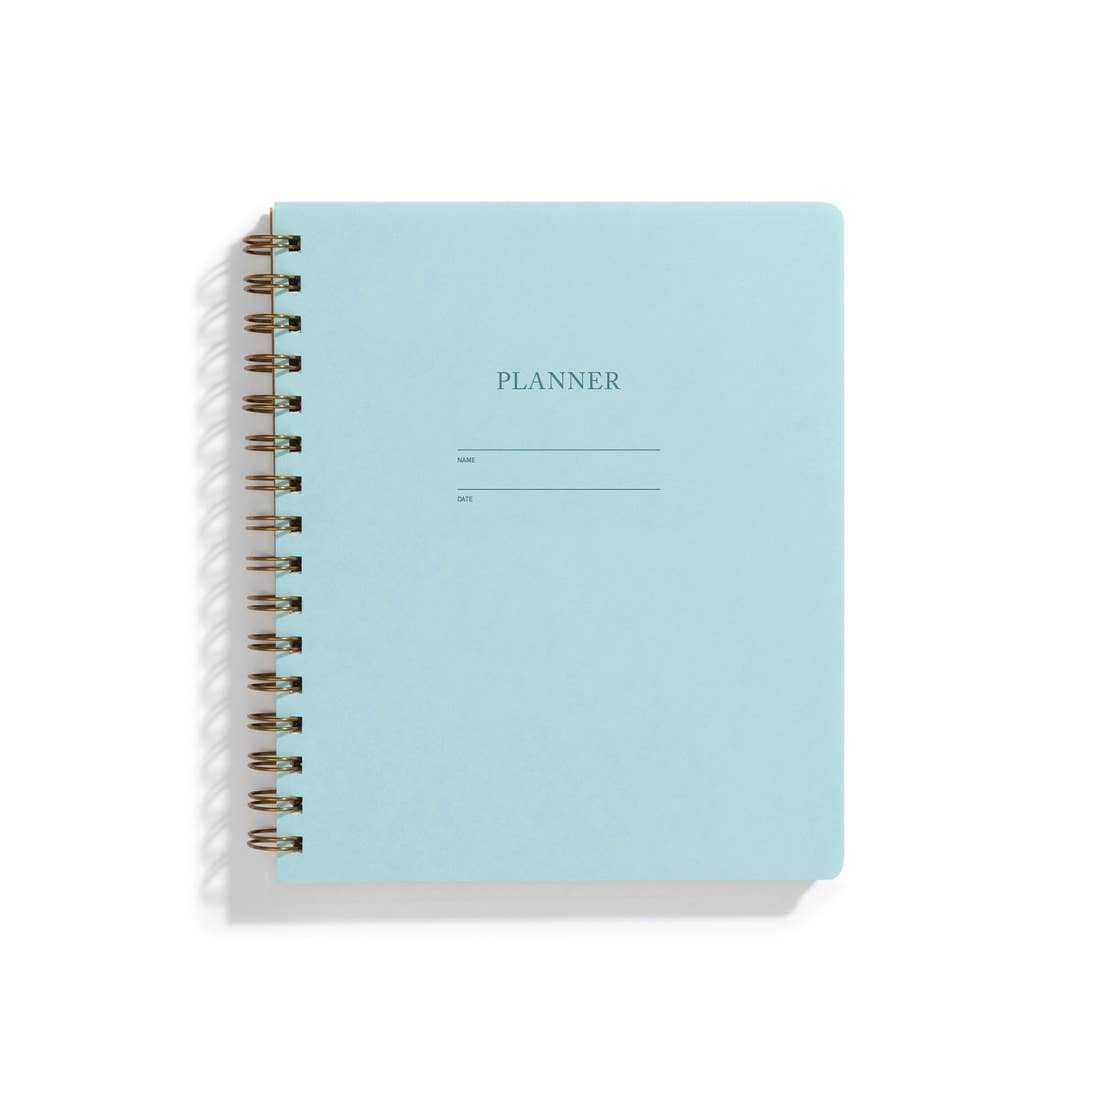 Image of Undated Planner